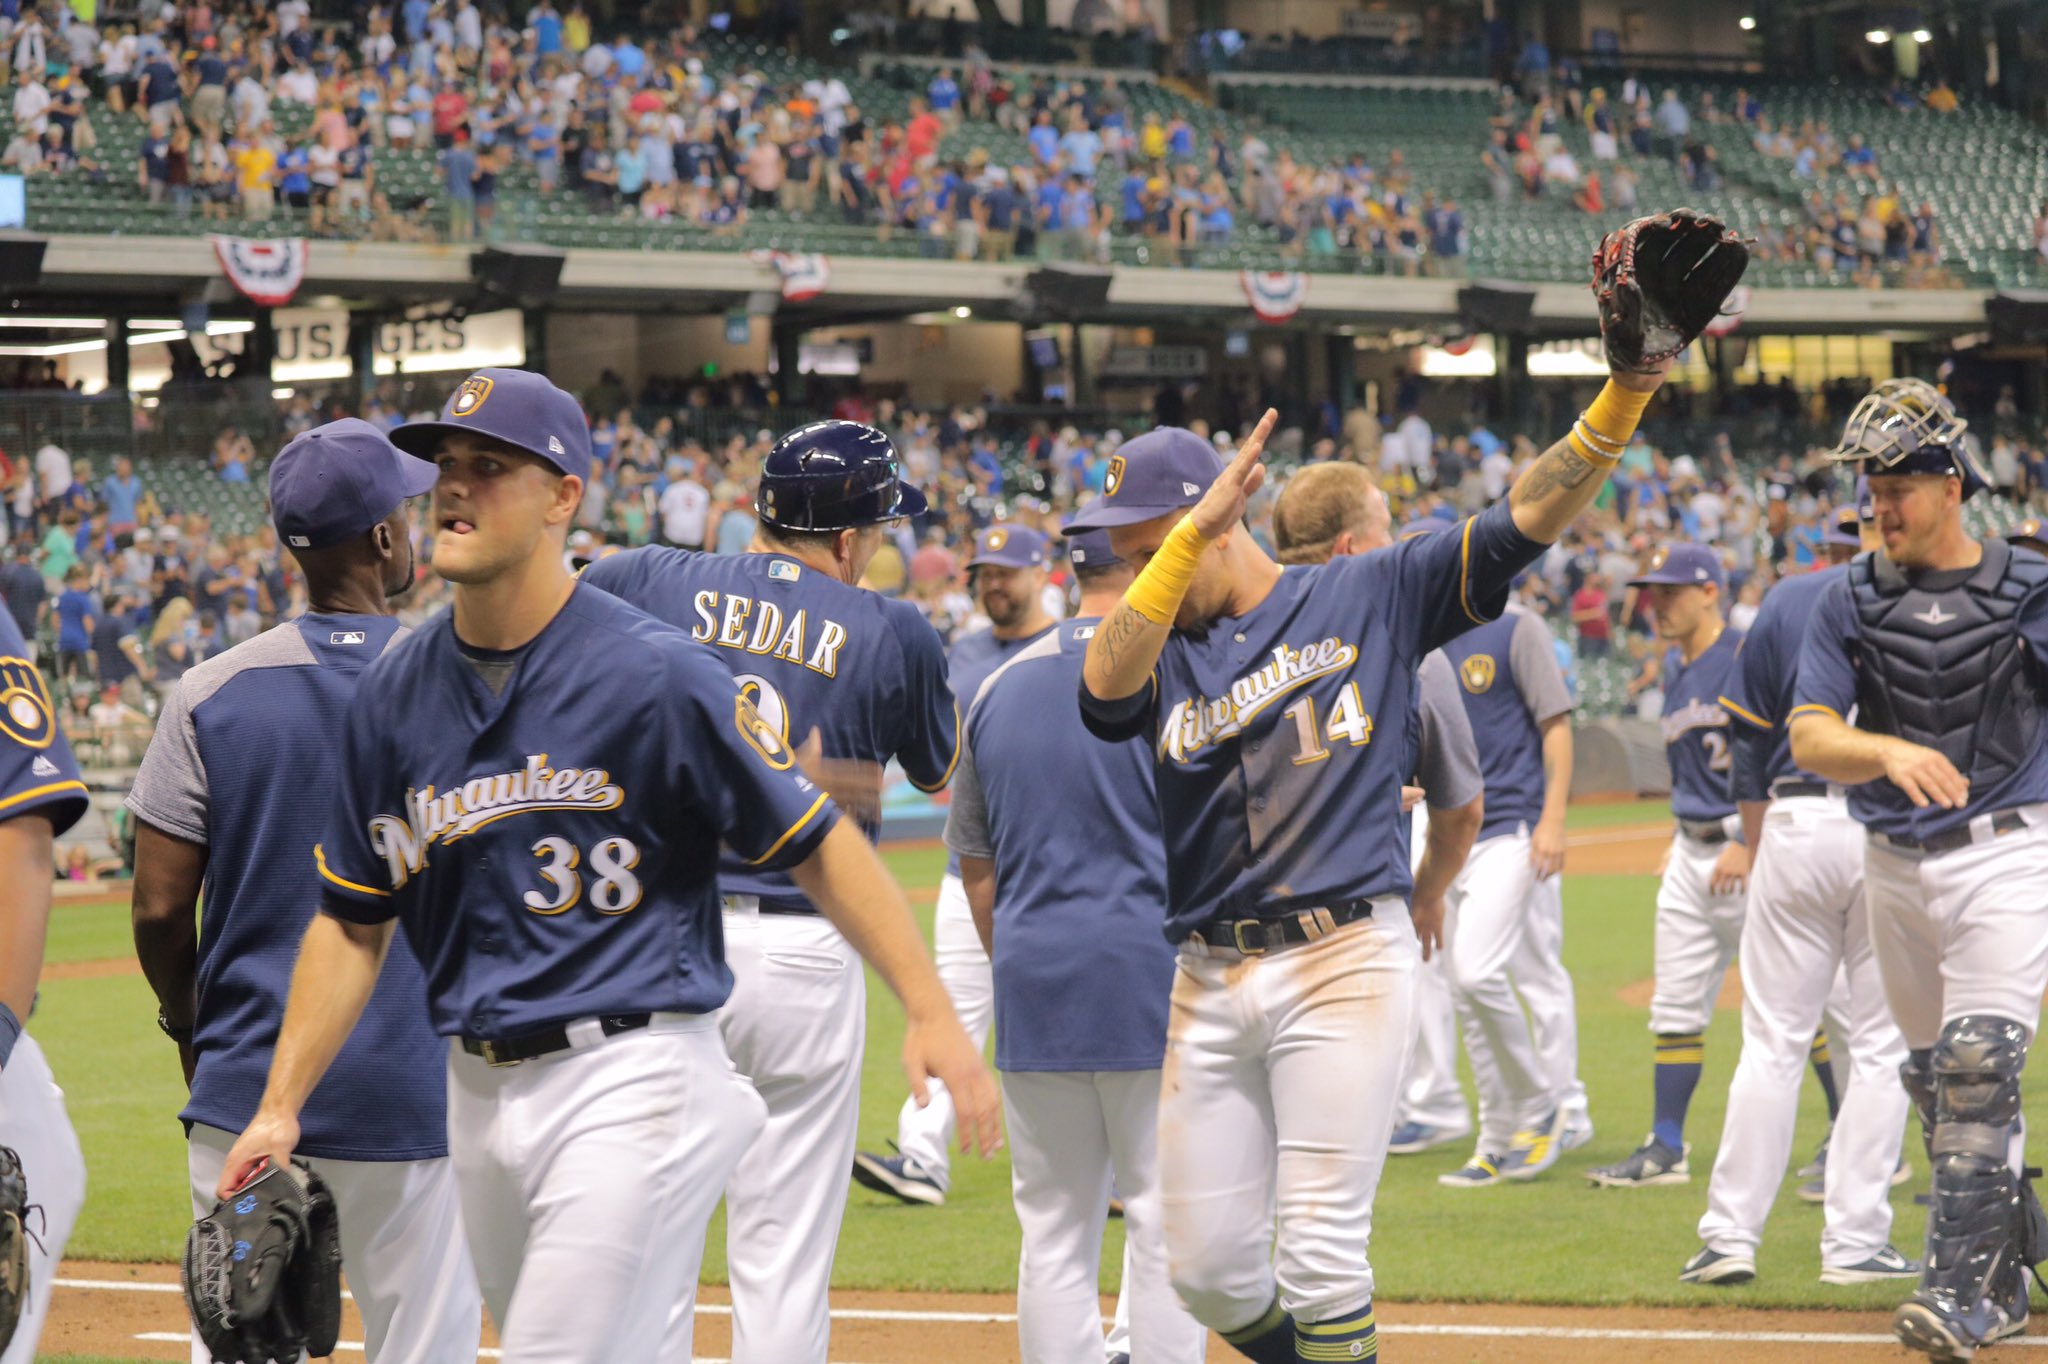 #Brewers win 7-2! A 3-run 8th put the game out of reach. #ThisIsMyCrew https://t.co/a5BGtgyEPw